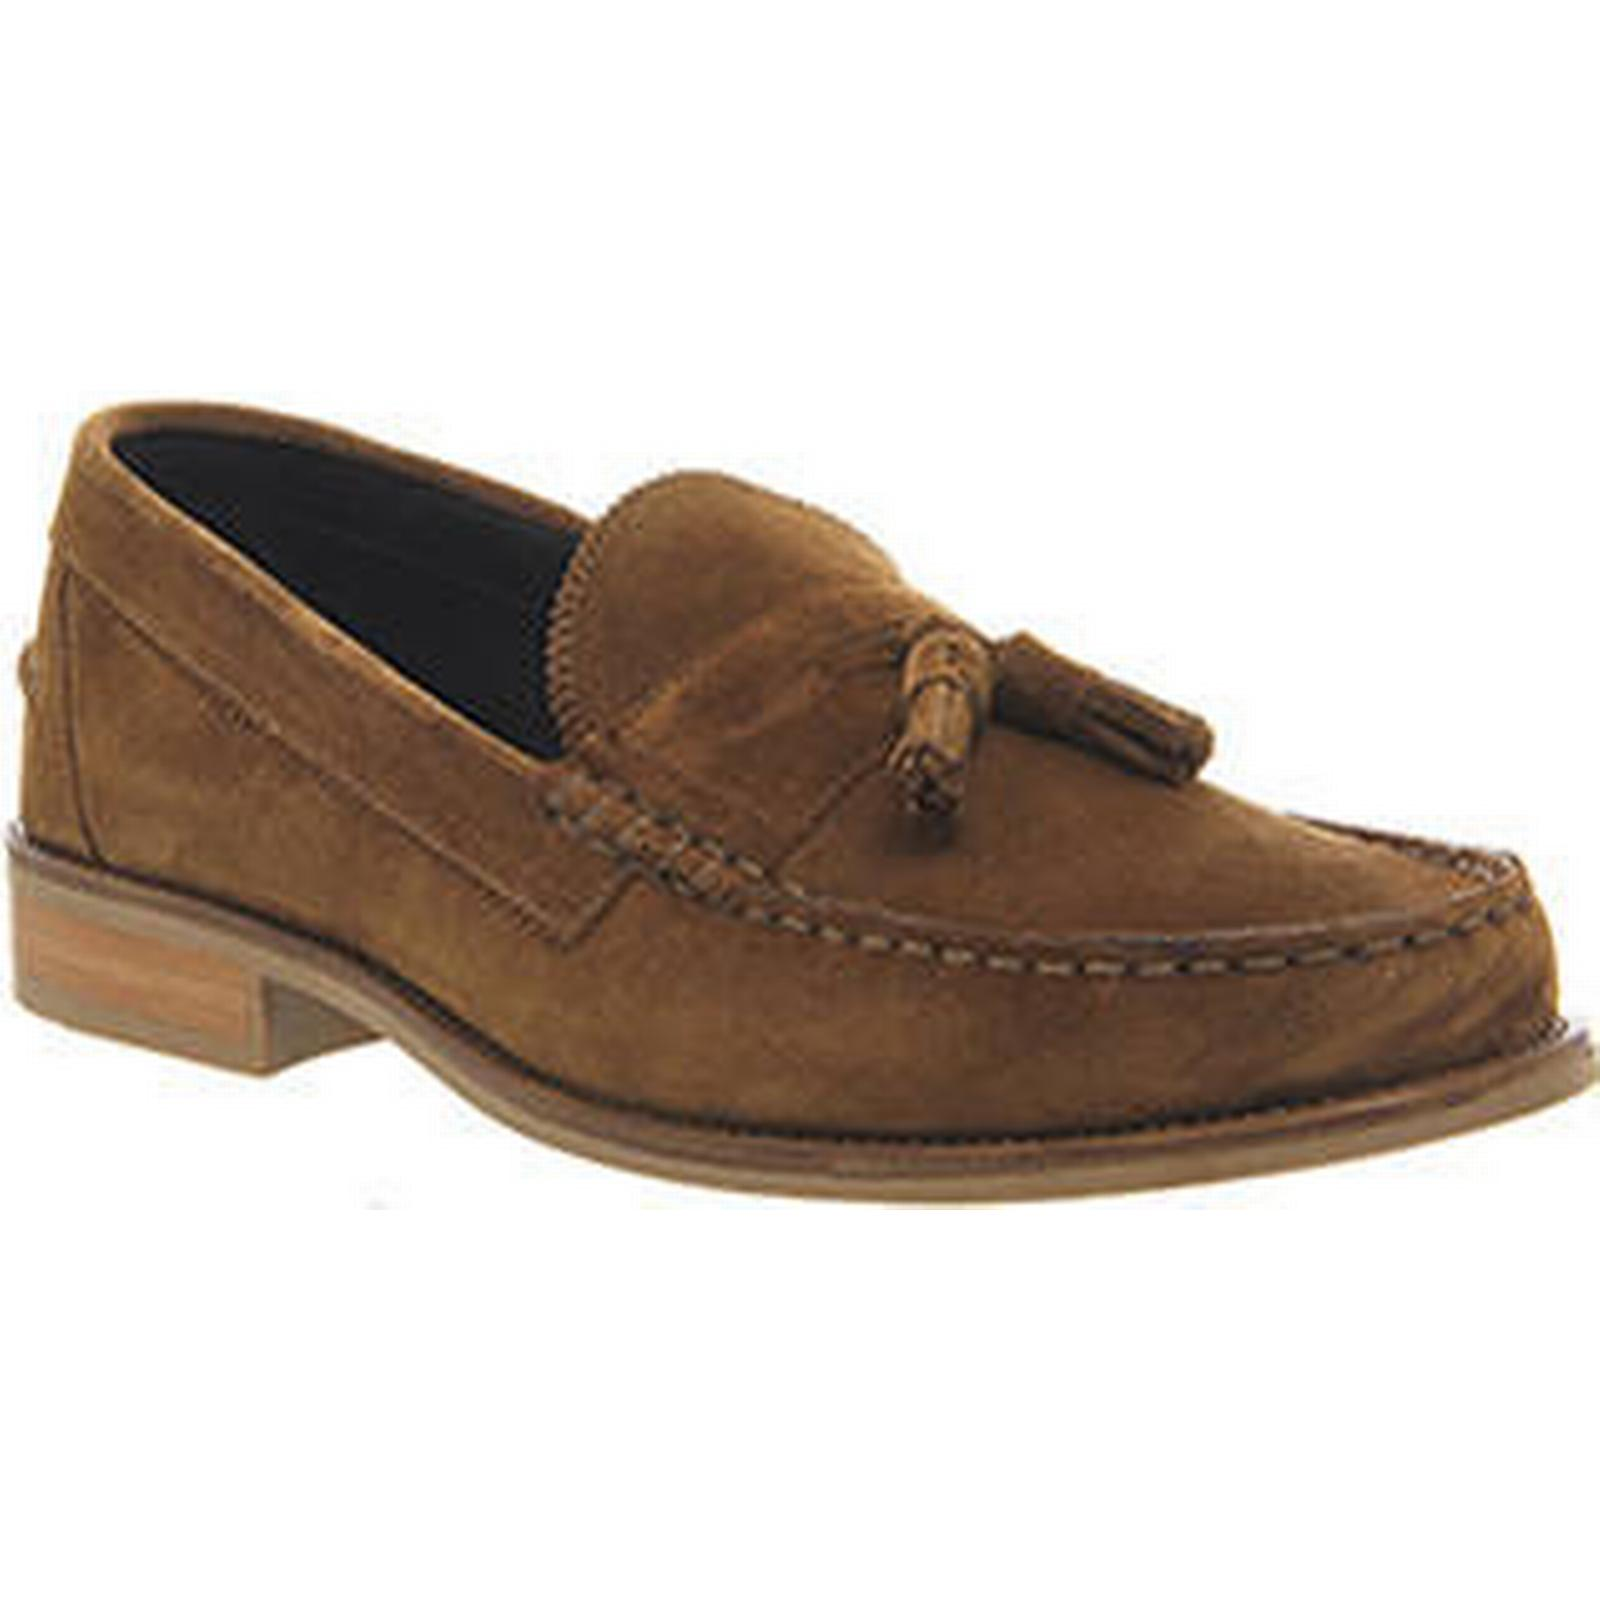 Ask Bonjourno the Missus Bonjourno Ask Tassel loafers RUST SUEDE 6f8936